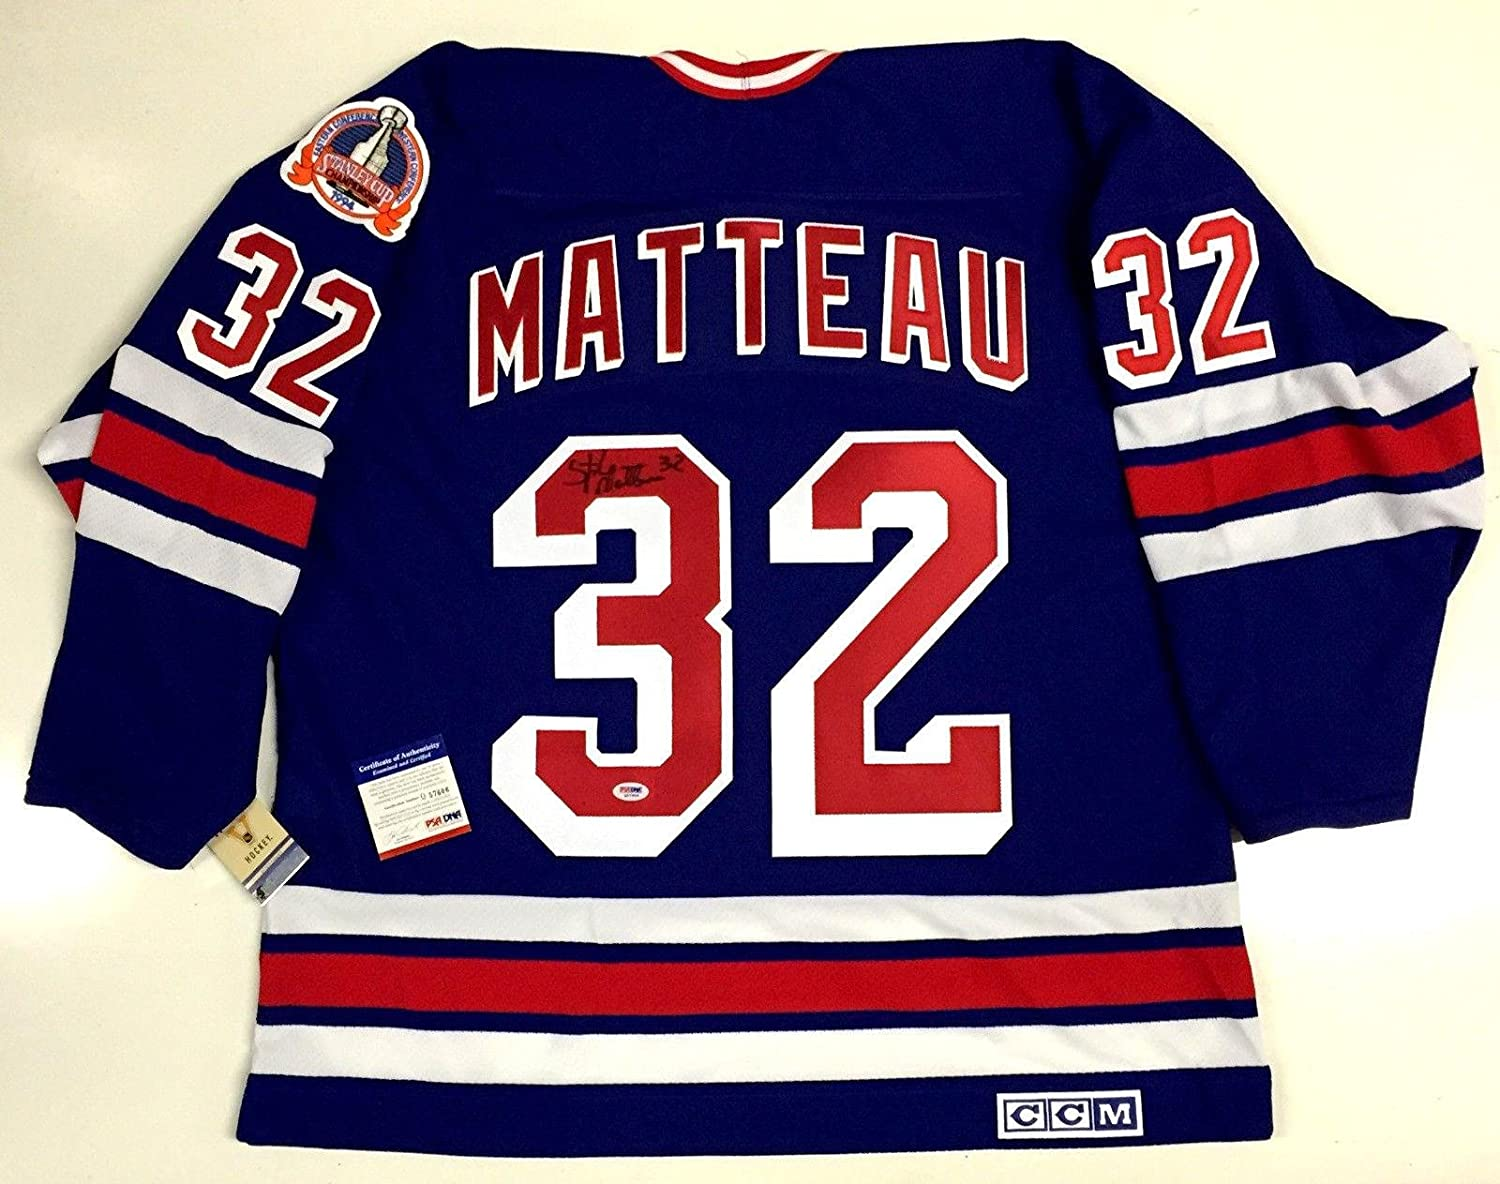 edd1c7314 Amazon.com  Stephane Matteau Signed Jersey - 1994 Cup Ccm Vintage Coa -  PSA DNA Certified - 5  Sports Collectibles